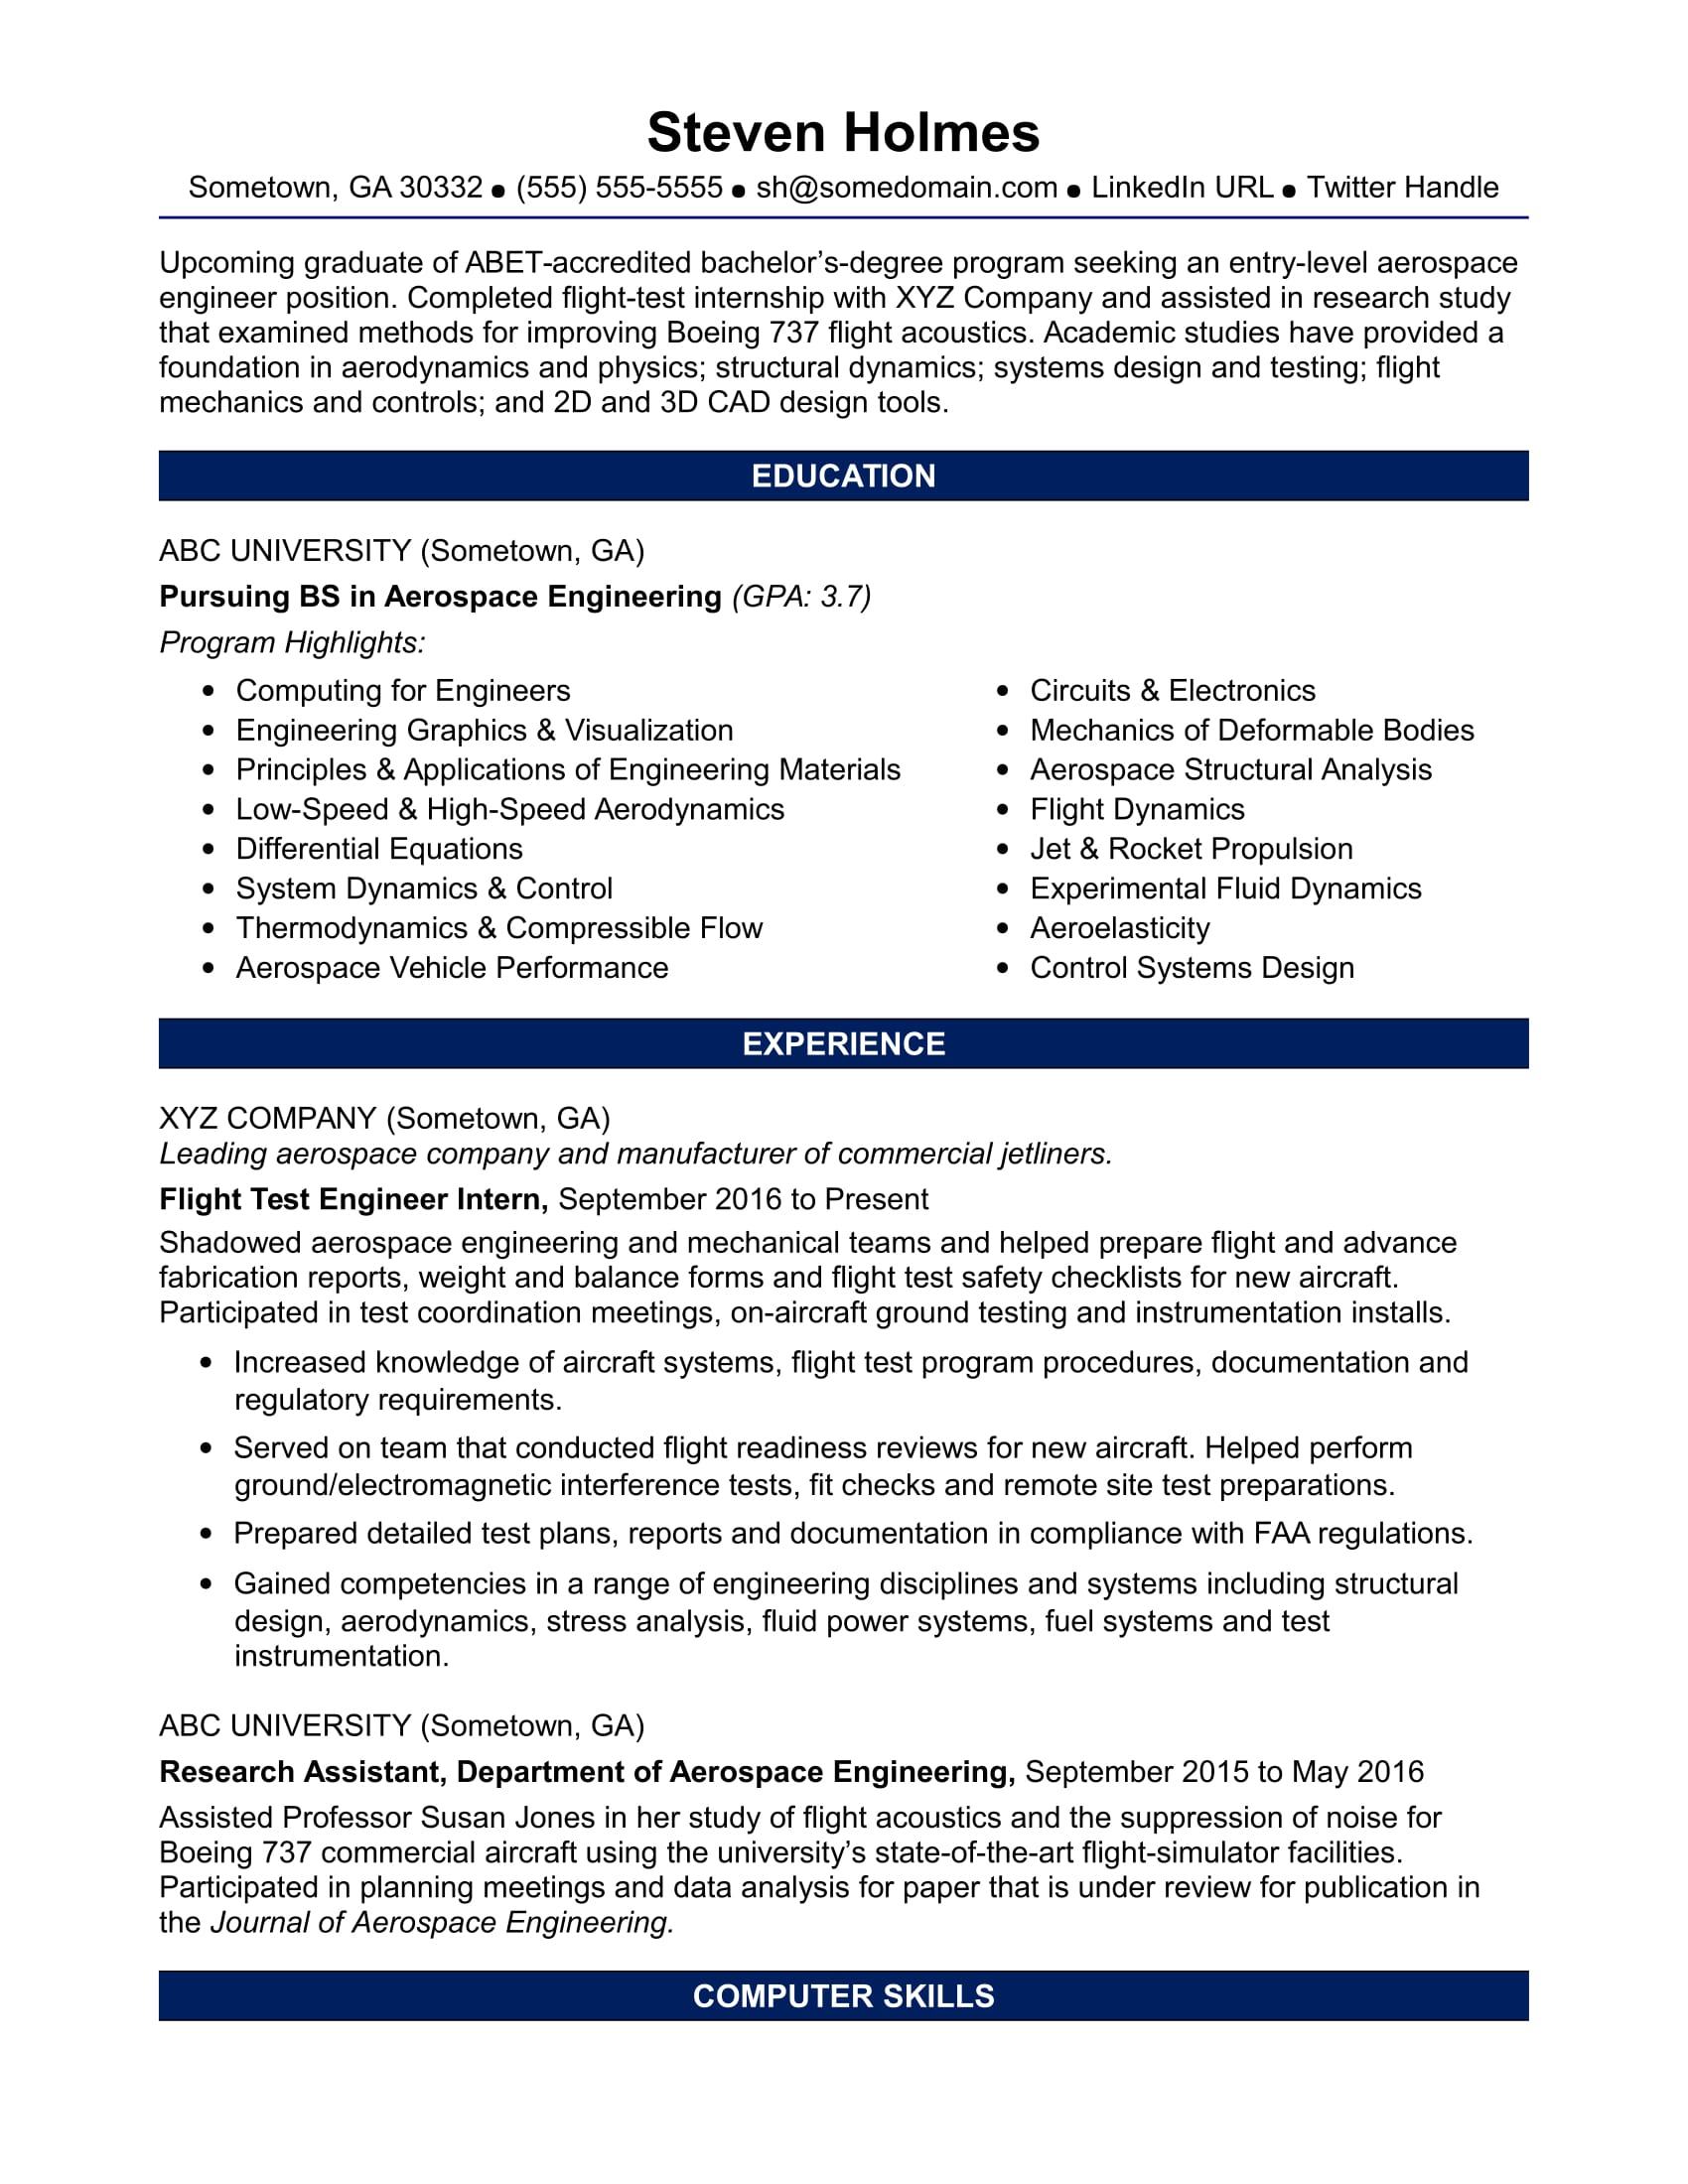 sample resume for an entry level aerospace engineer monster electronics test objective Resume Electronics Test Engineer Resume